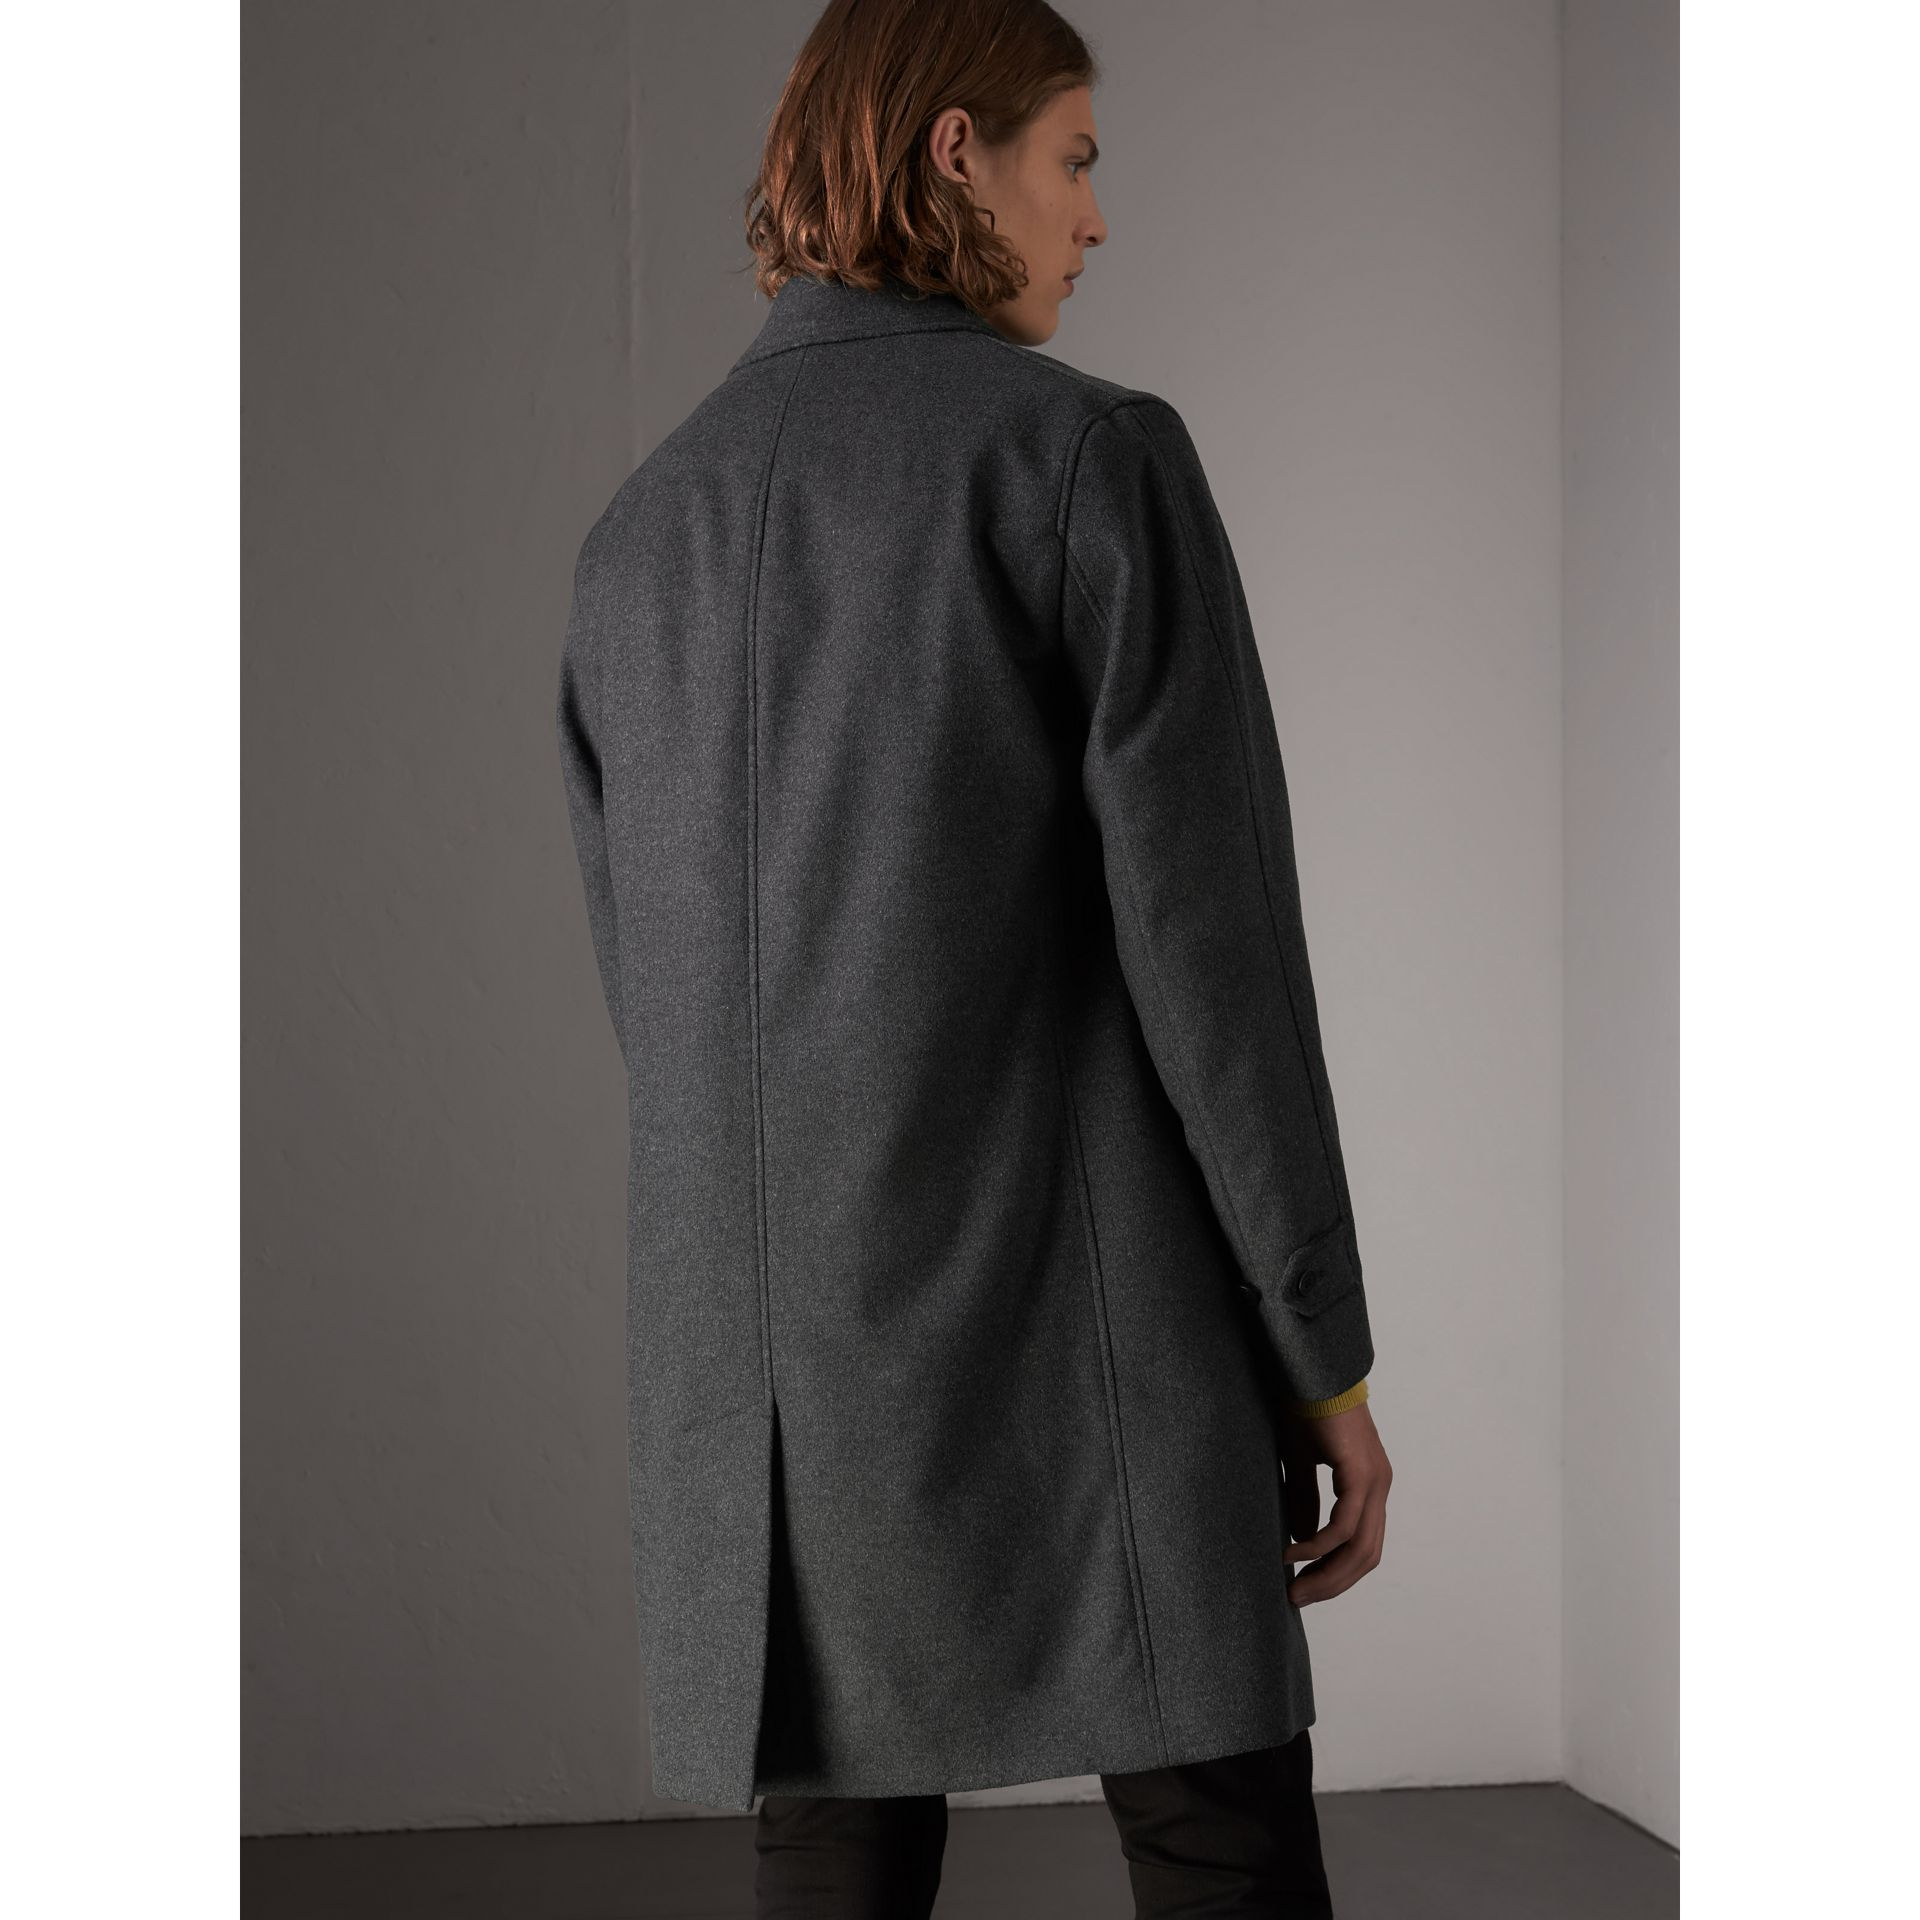 Wool Cashmere Blend Car Coat with Detachable Gilet in Dark Grey Melange - Men | Burberry United States - gallery image 2